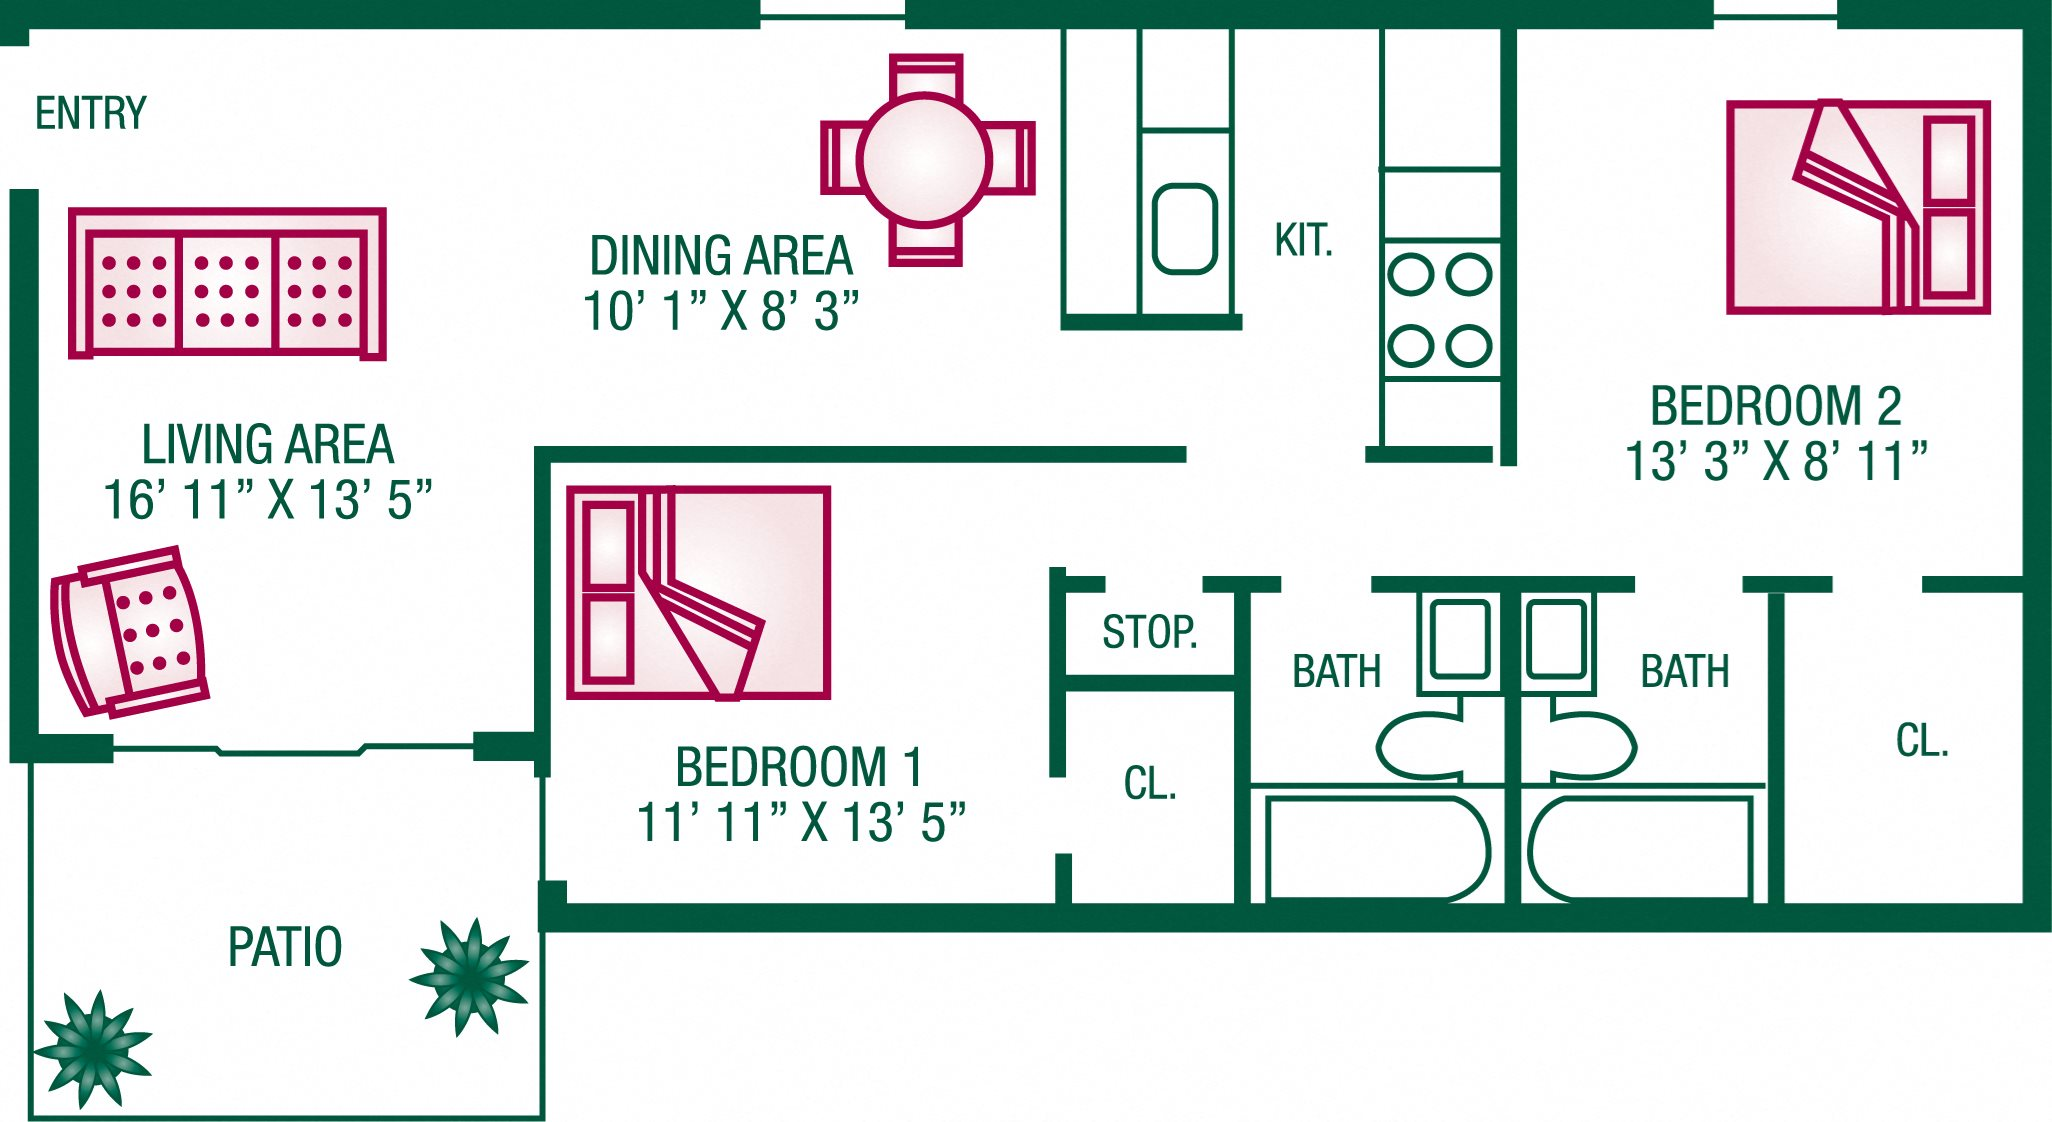 2 Bedroom / 2 Bath - Plan B Floor Plan 4